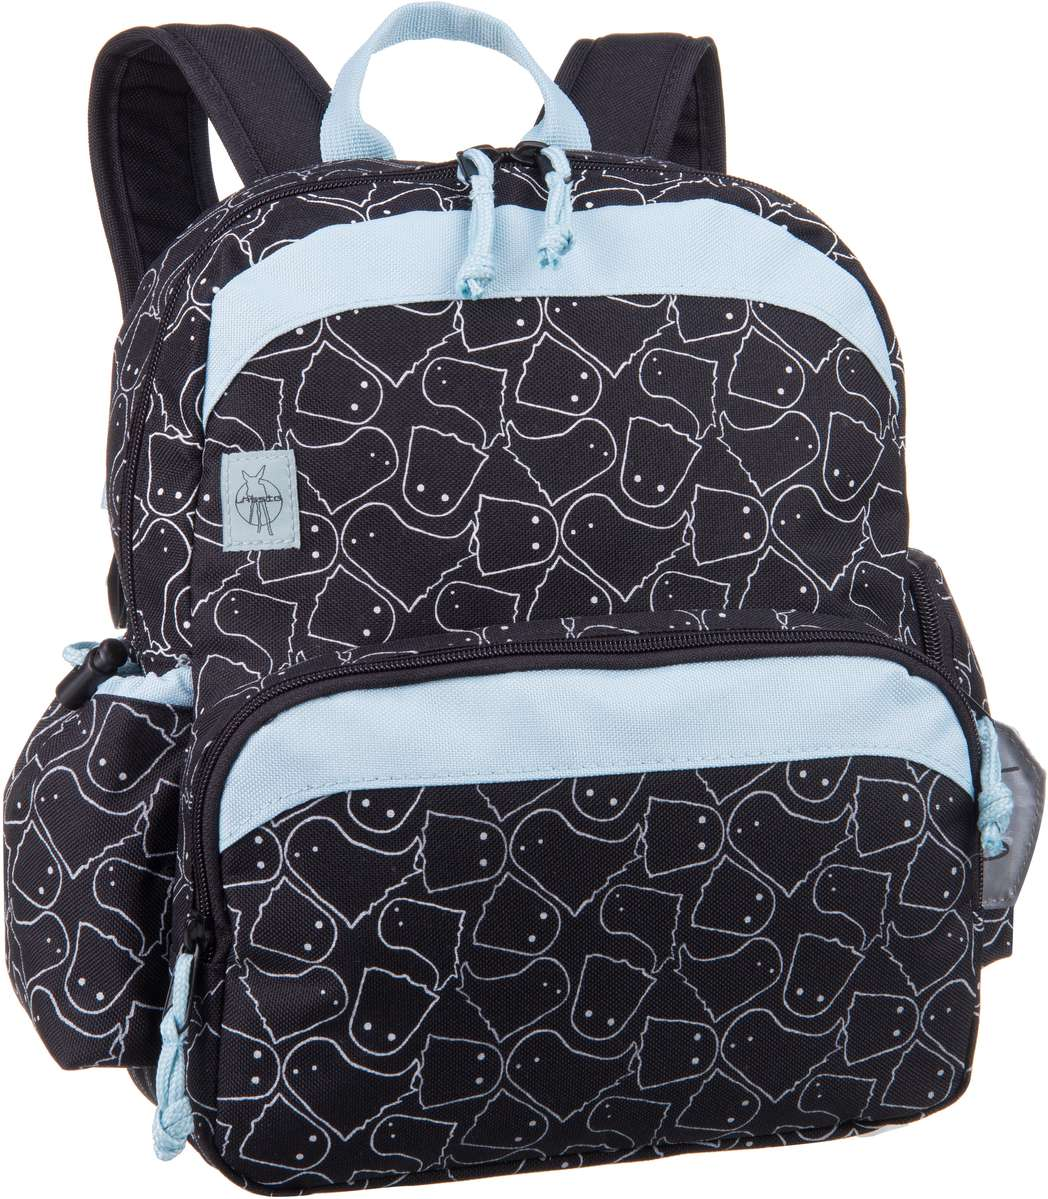 Rucksack / Daypack Spooky Medium Backpack Black